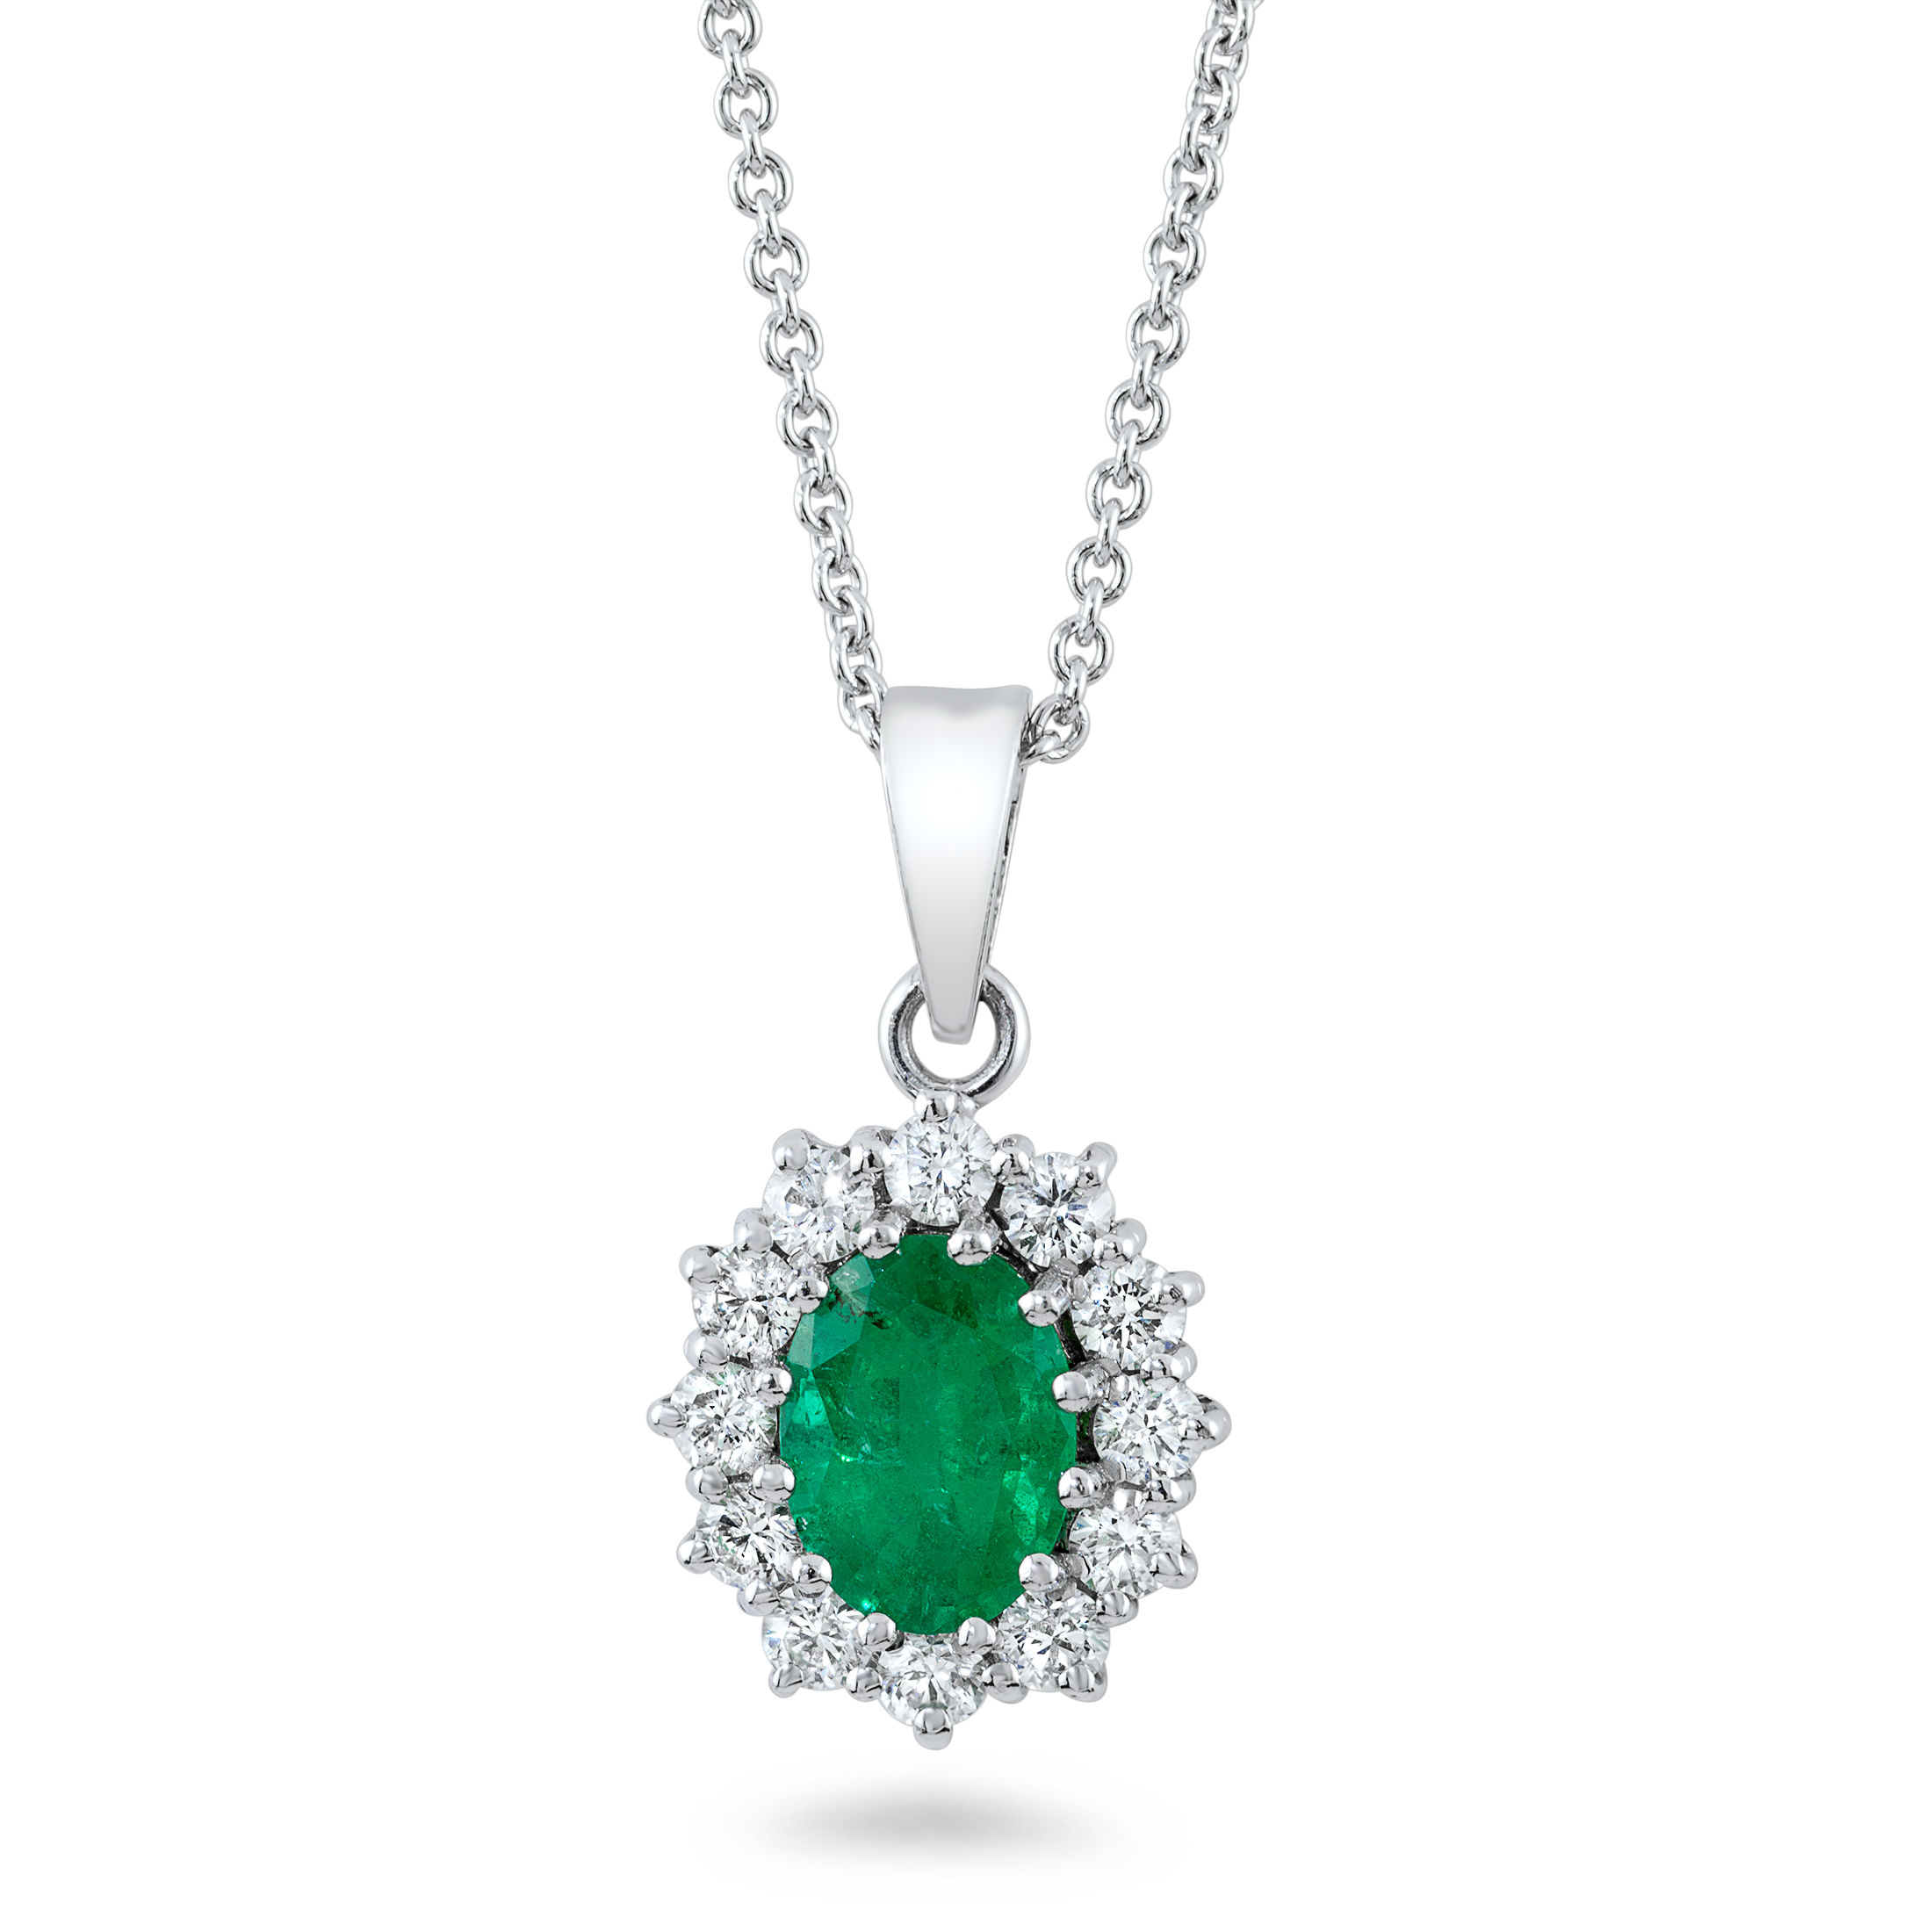 uploads necklace necklace PNG20 5